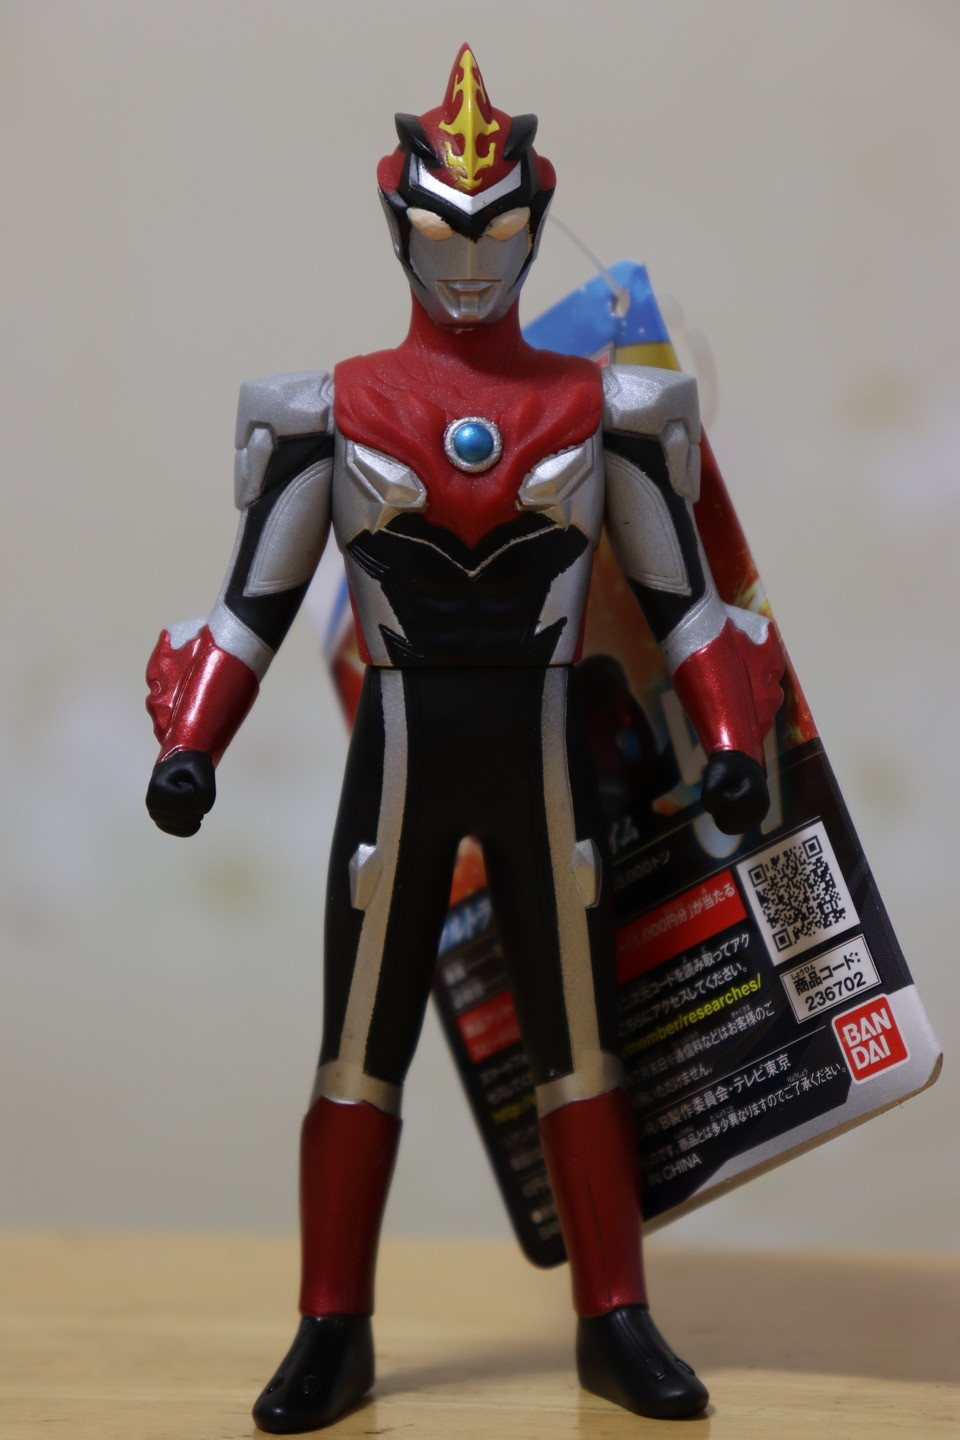 ブルフレイムのソフビ(ultraman bull flame soft vinyl figure)